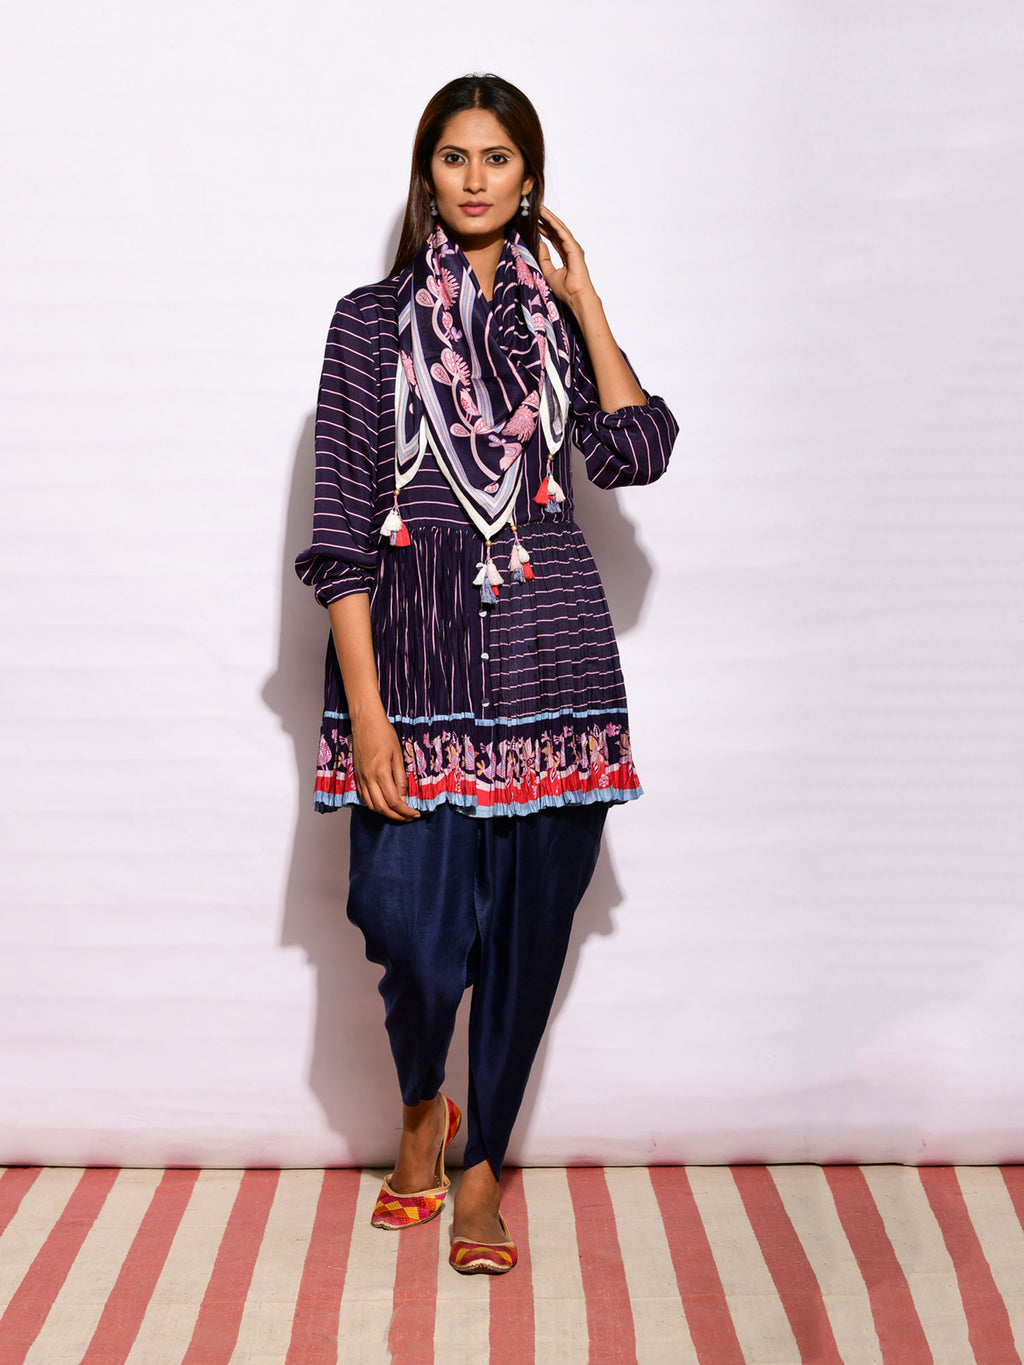 dhoti pants, tunics, kurtas, style, fashion, indian contemporary fashion, indian apparel, womenswear, swativijaivargie, PRINTEDTUNICS